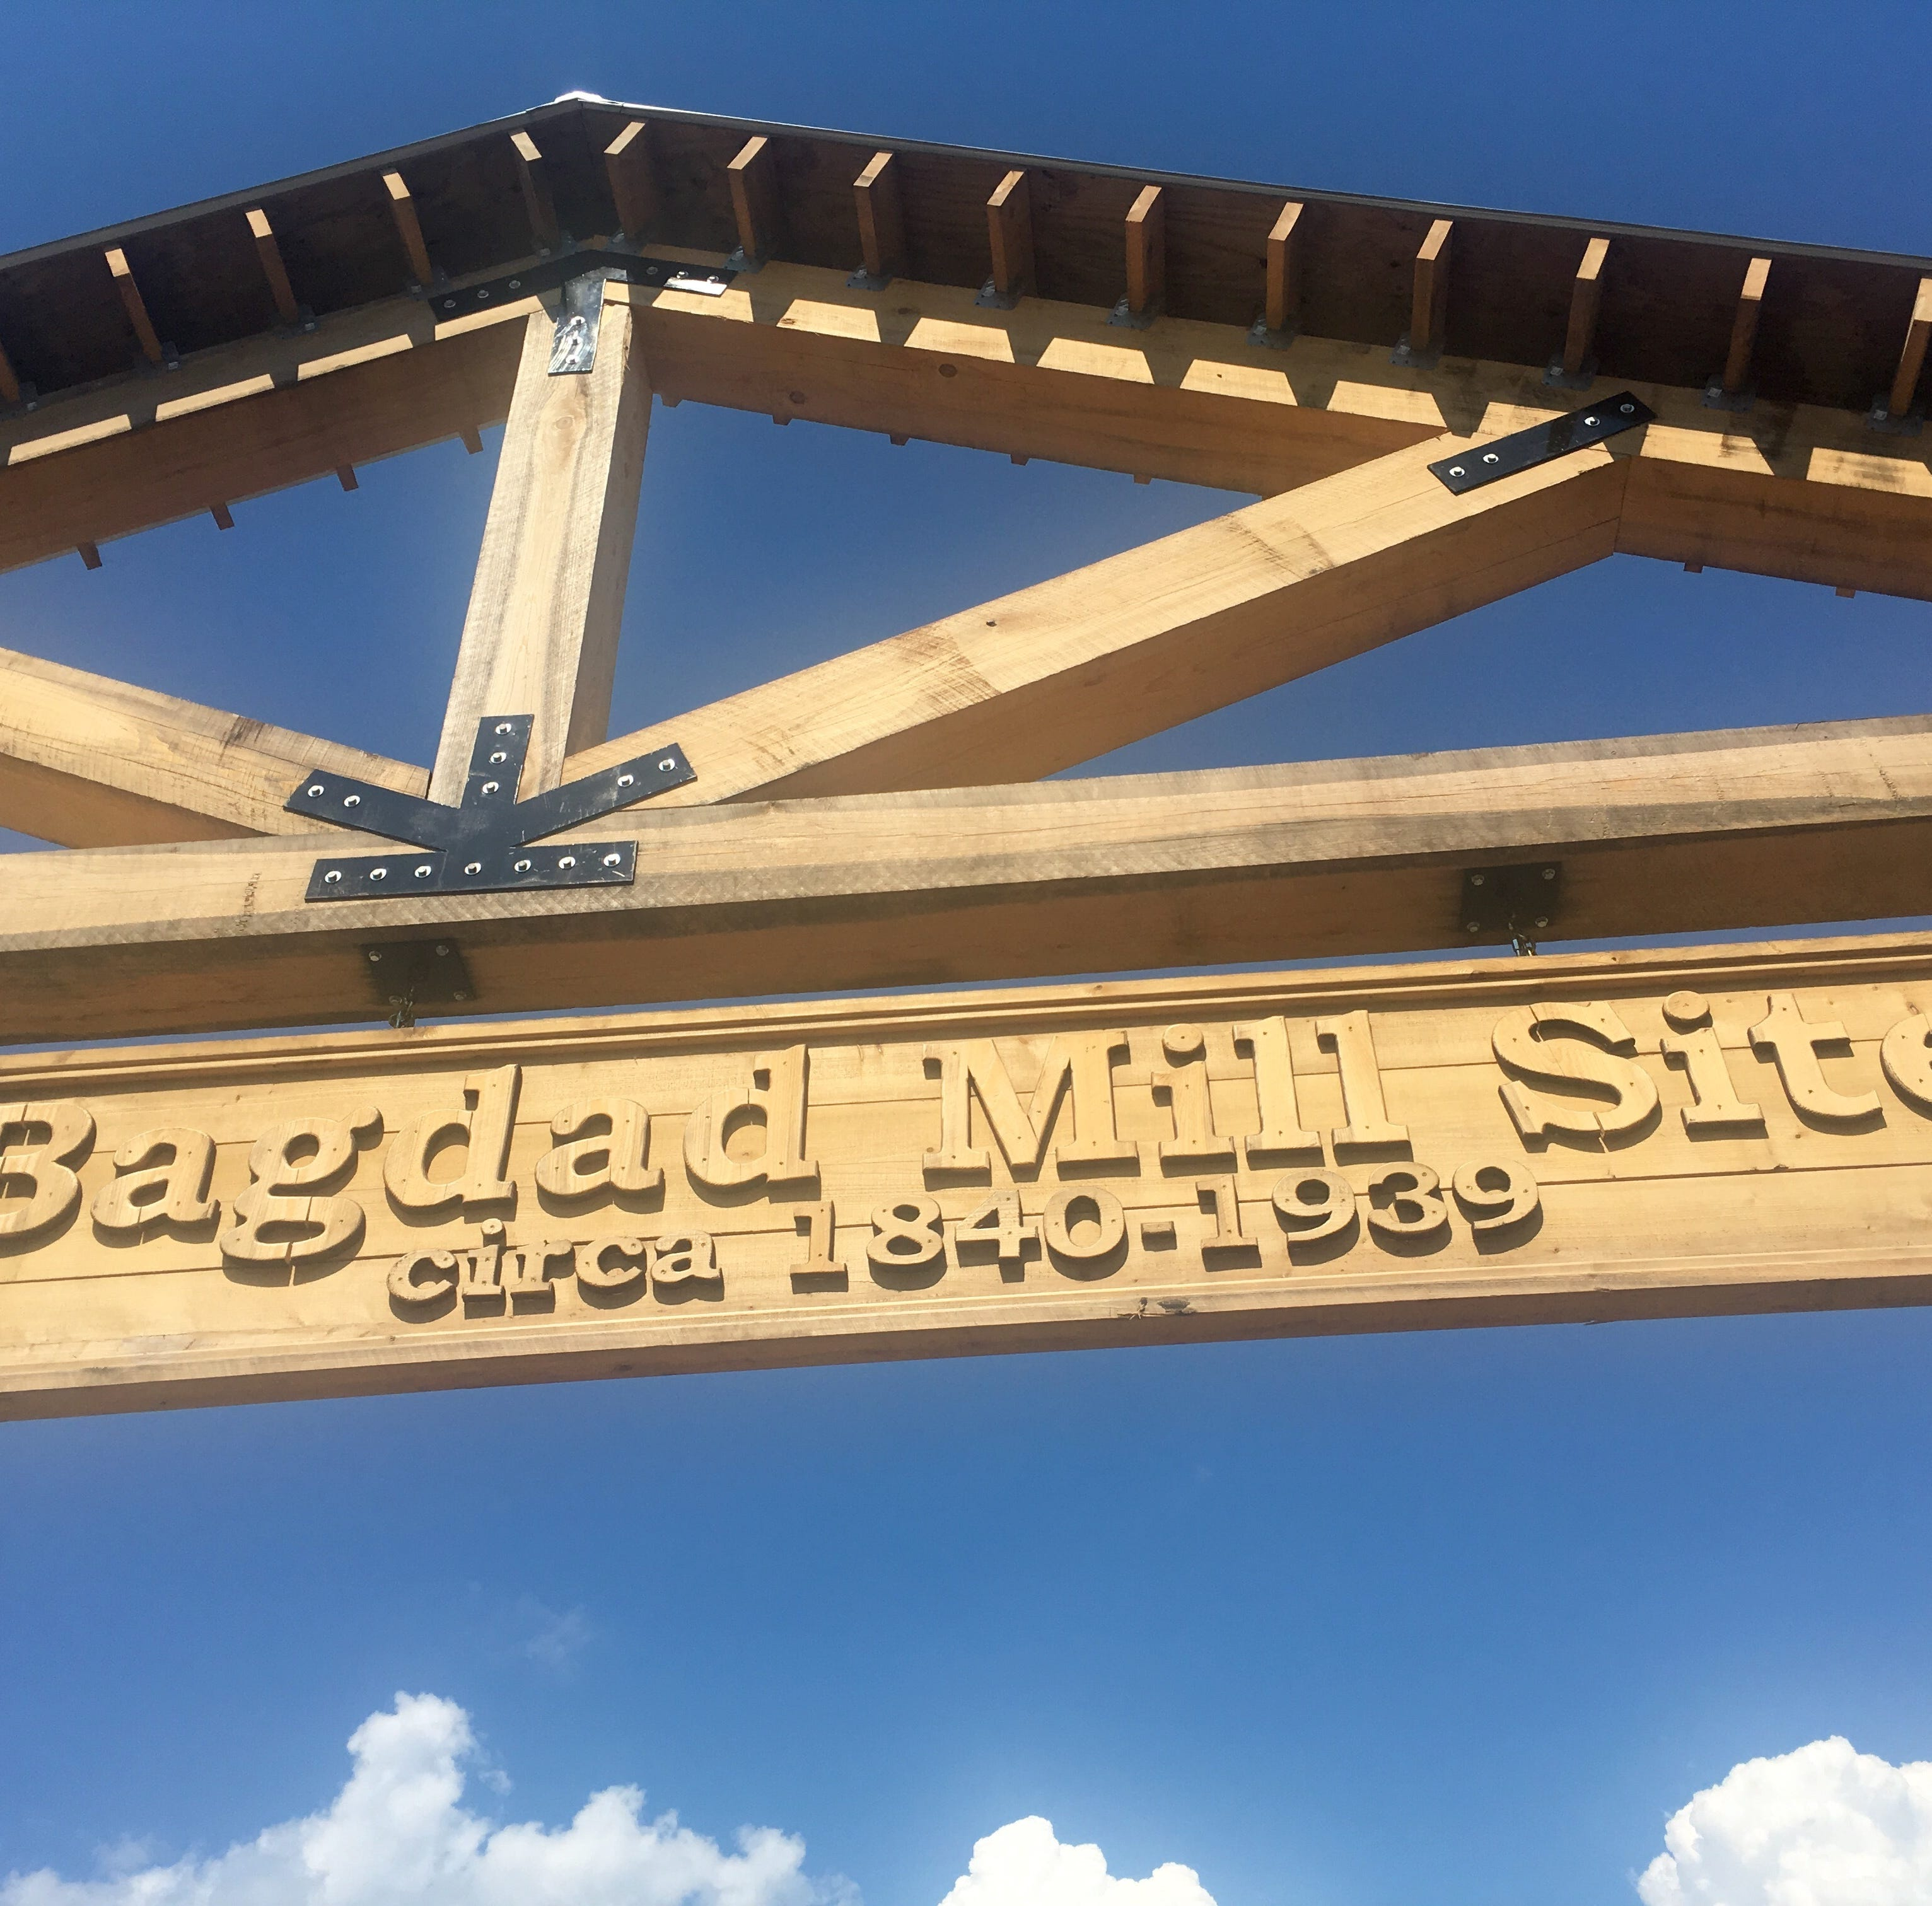 Bagdad was once the place in Northwest Florida to seek prosperity | Appleyard